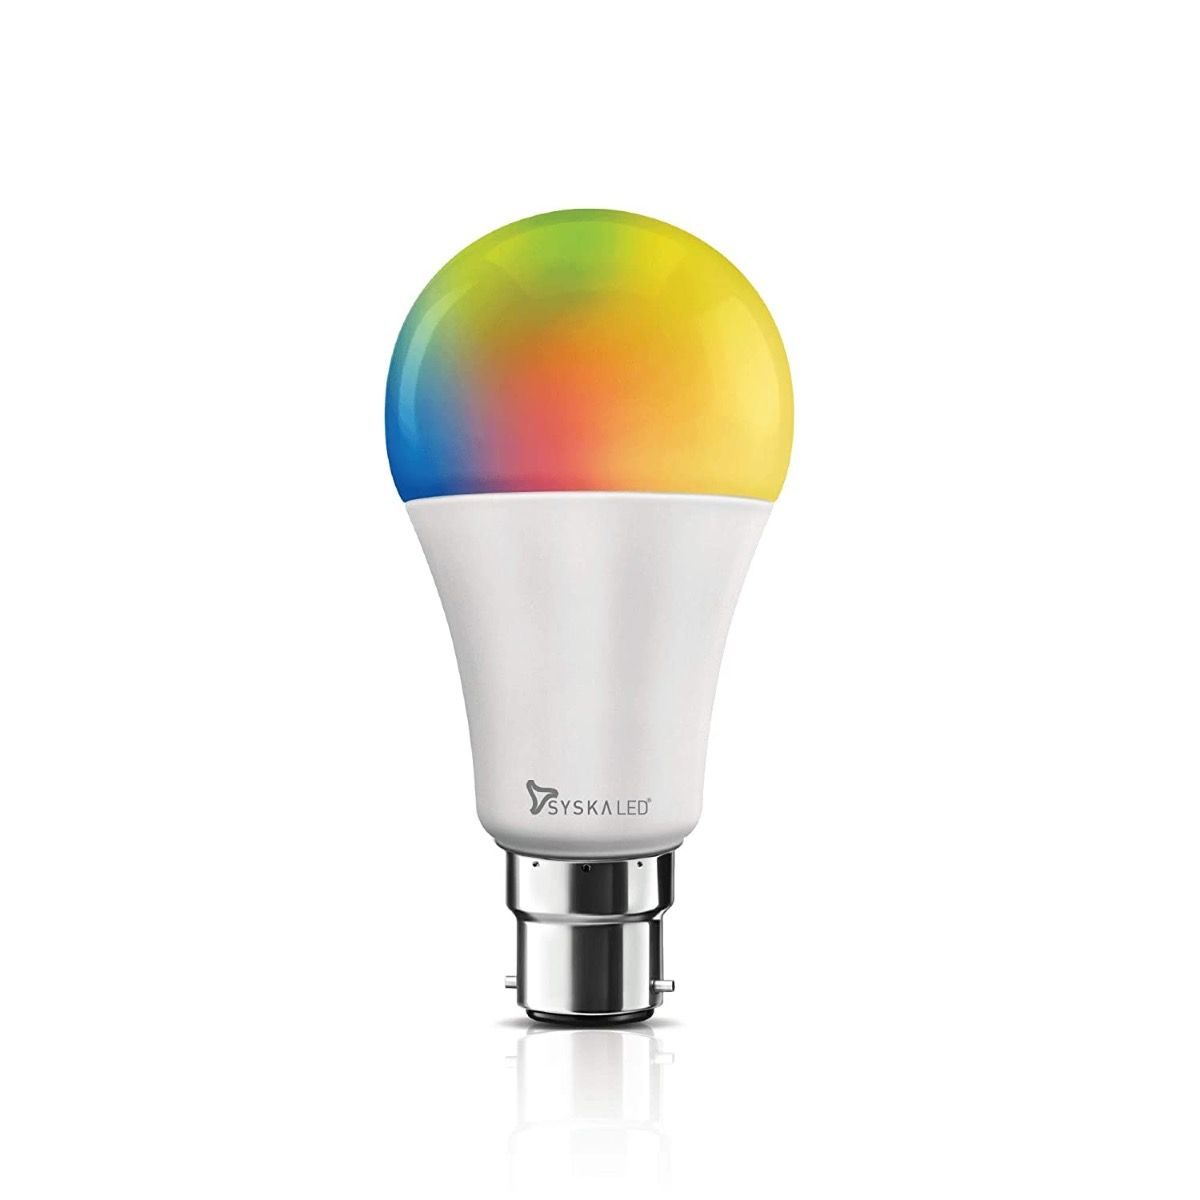 Smart Wi-Fi Enabled 9W Led Bulb (with Alexa & Google Assistant)